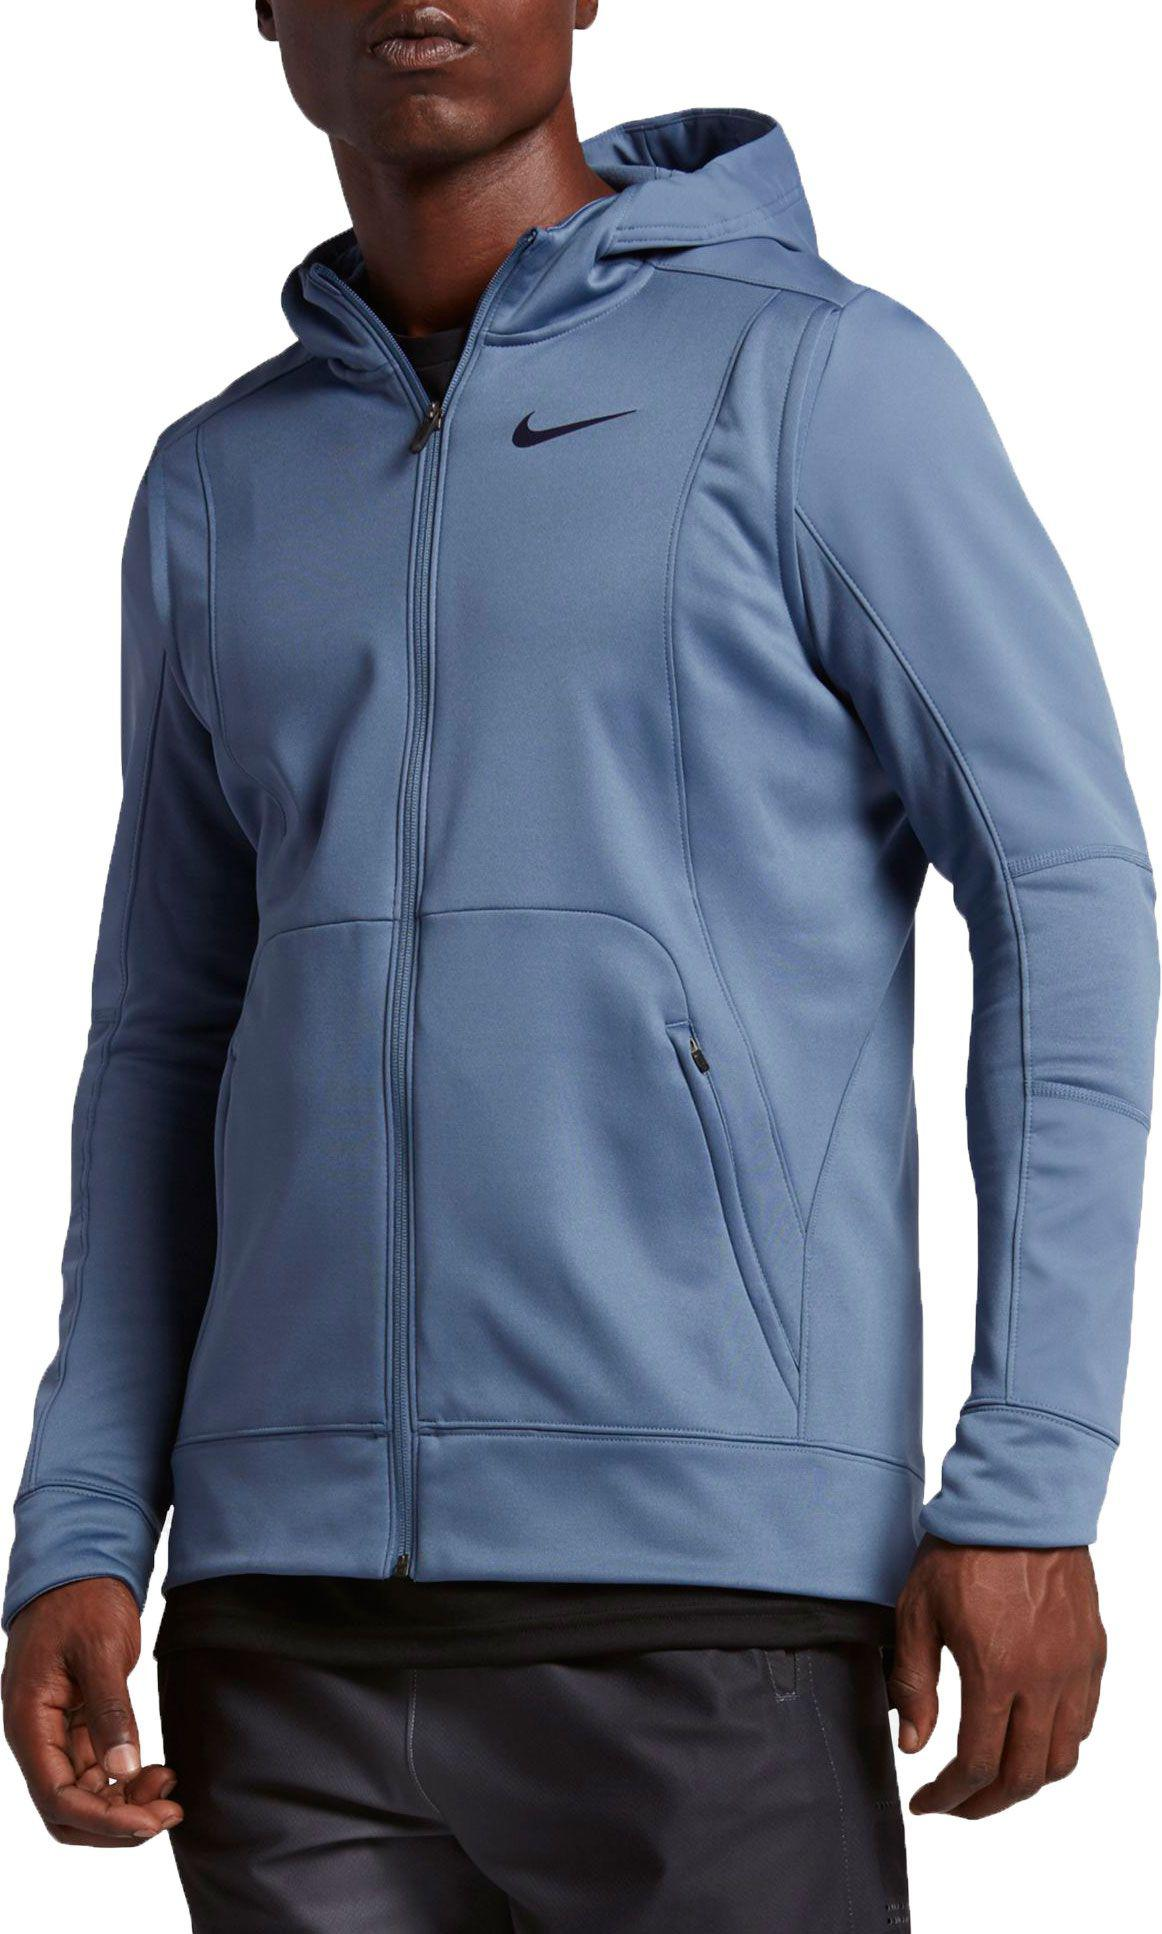 0f718e66fa2c Lyst - Nike Therma Hyper Elite Basketball Hoodie in Blue for Men